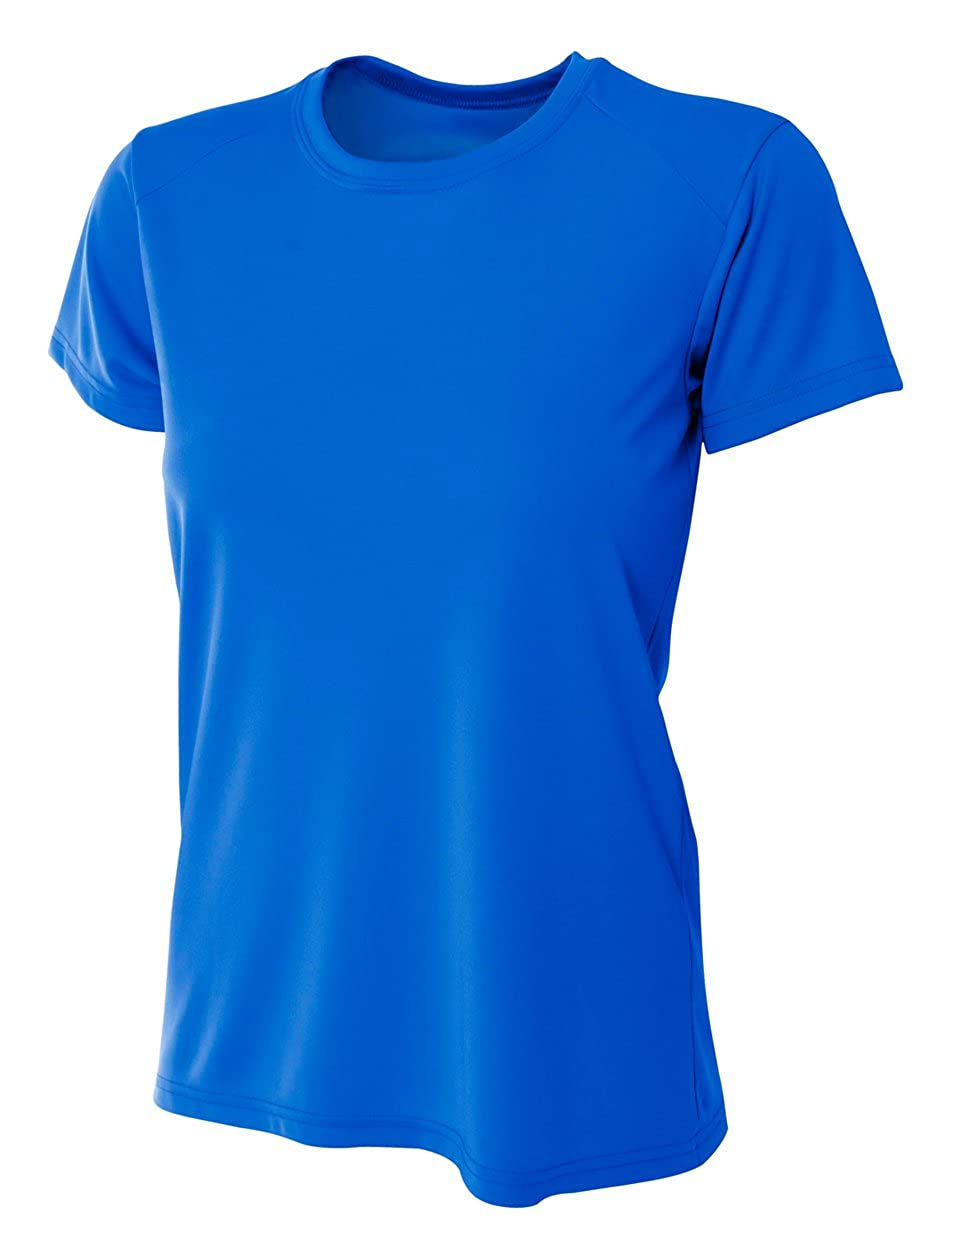 A4 Women's Cooling Performance Crew Short Sleeve Tee